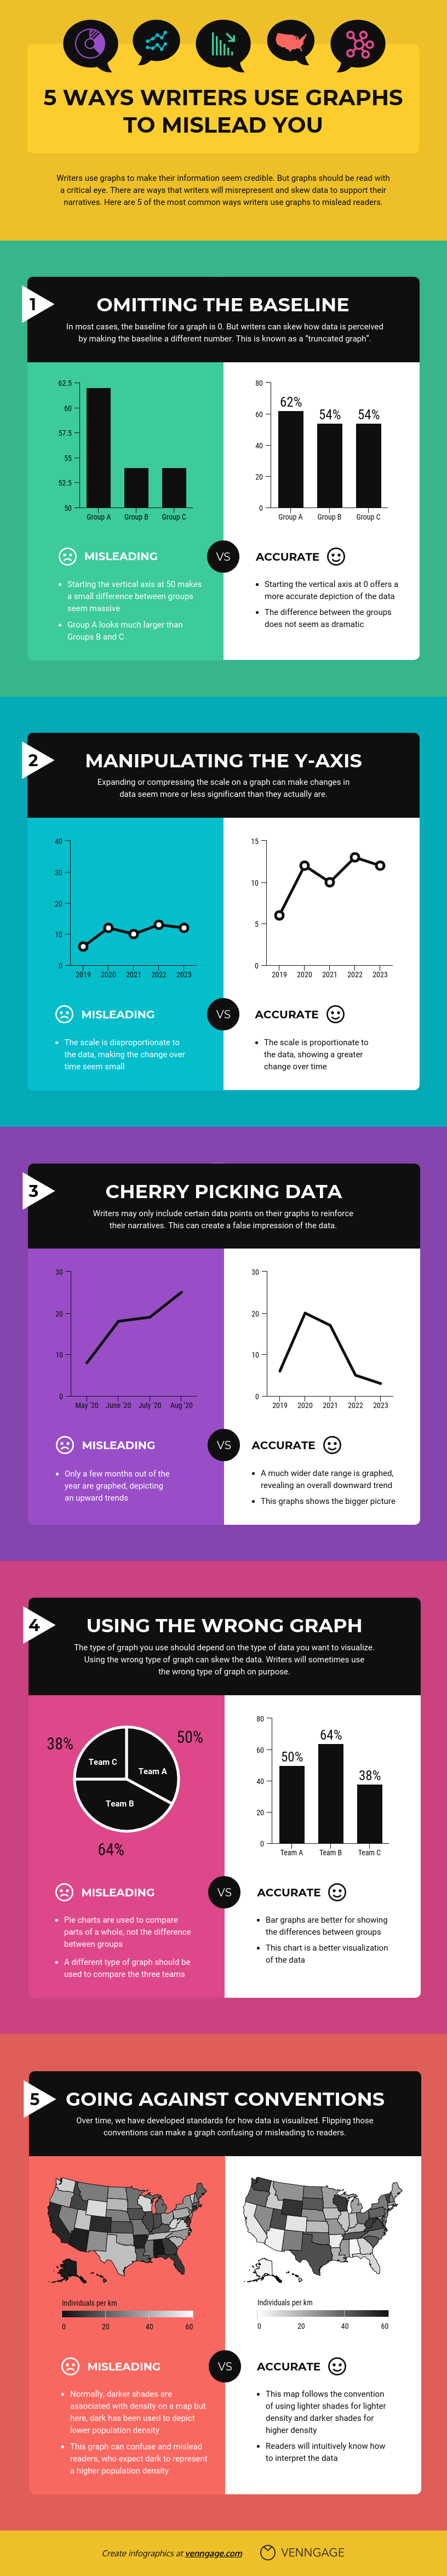 misleading graphs infographic